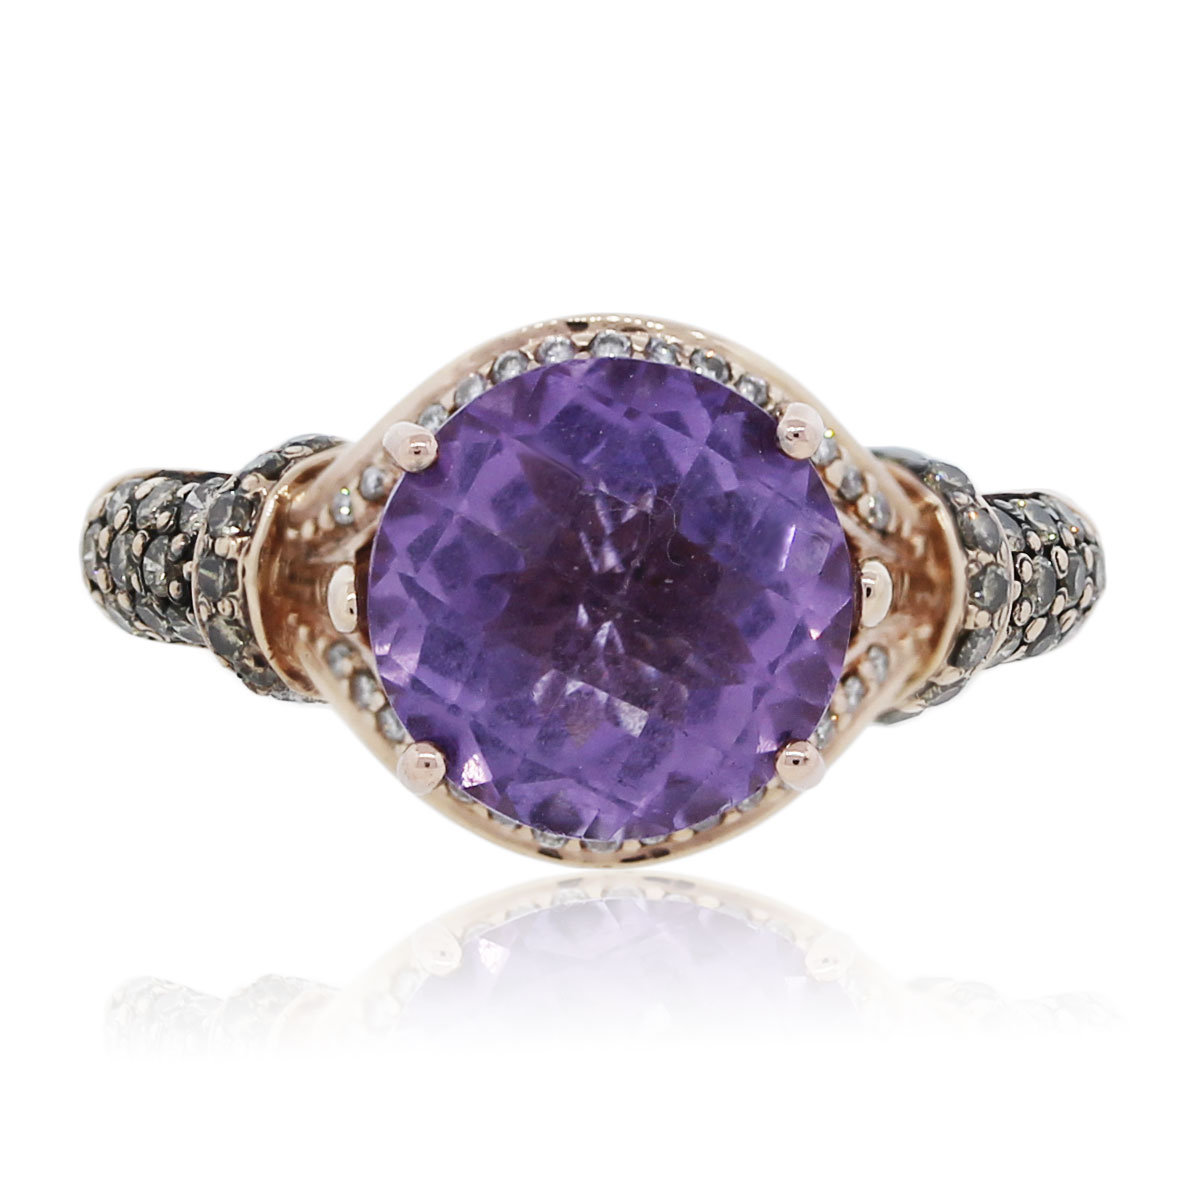 You Are Viewing This Le Vian 14k Rose Gold Amethyst With Diamonds Ring!